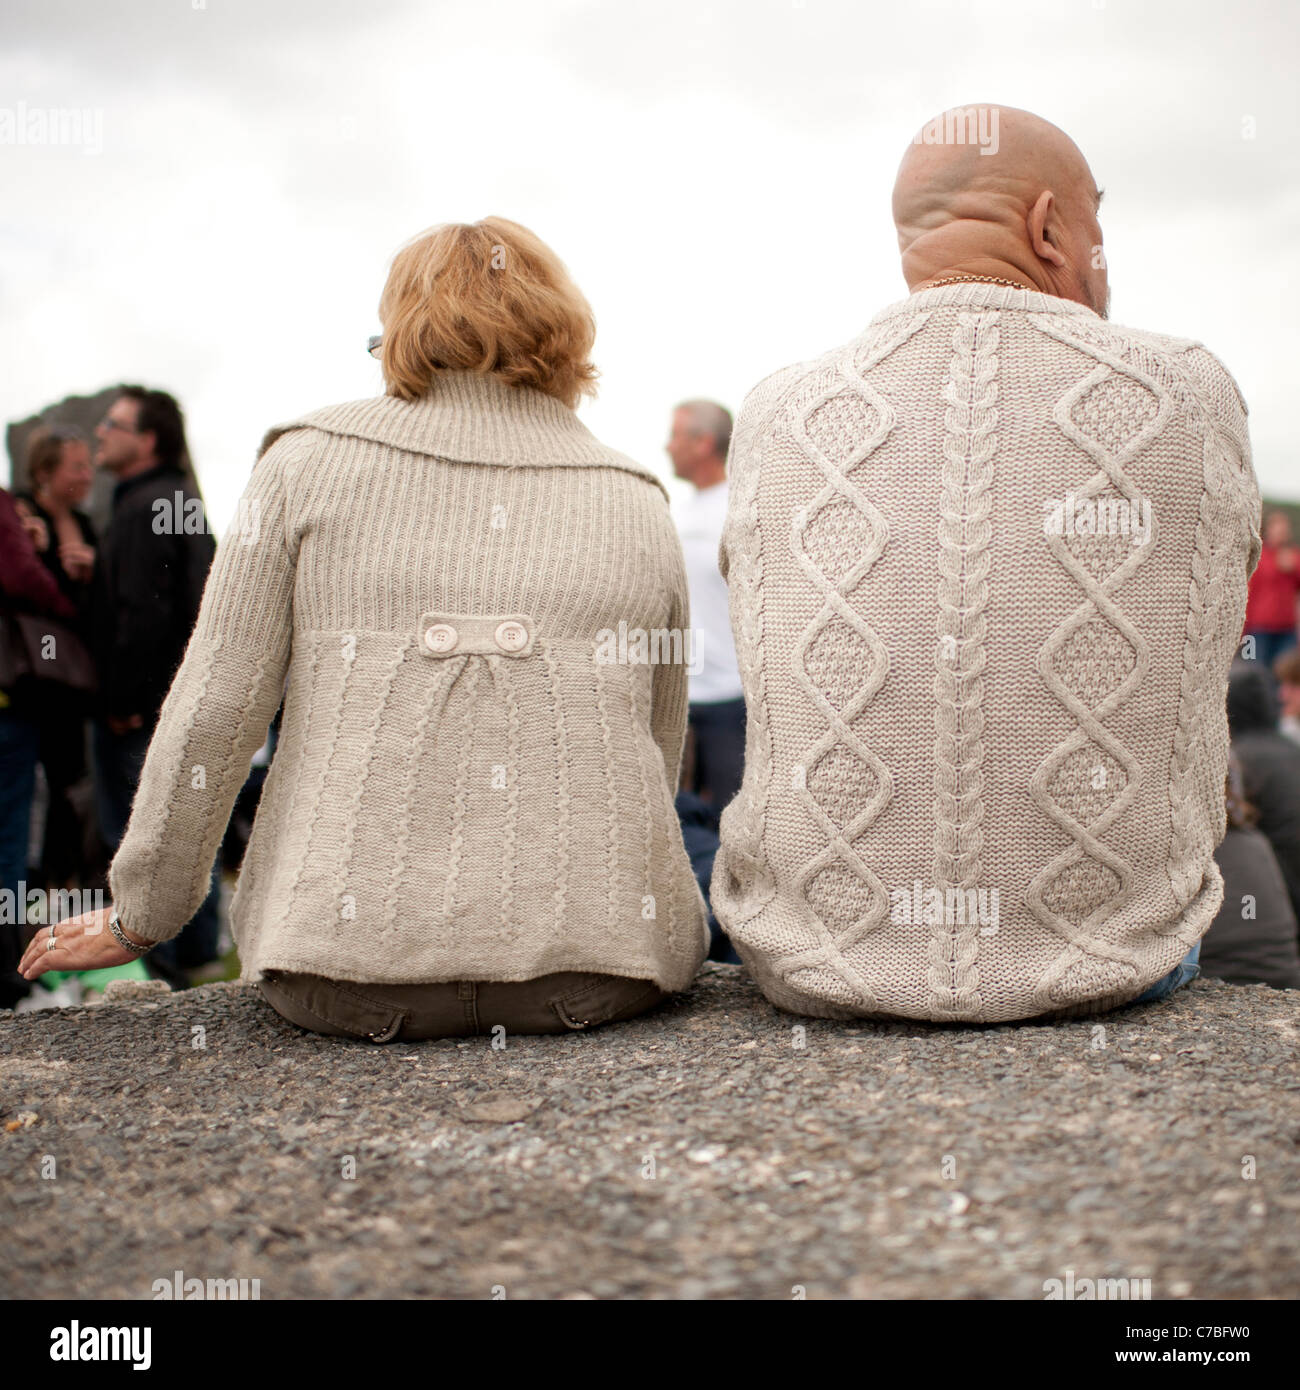 Rear views of a man and woman wearing matching beige cardigans - Stock Image